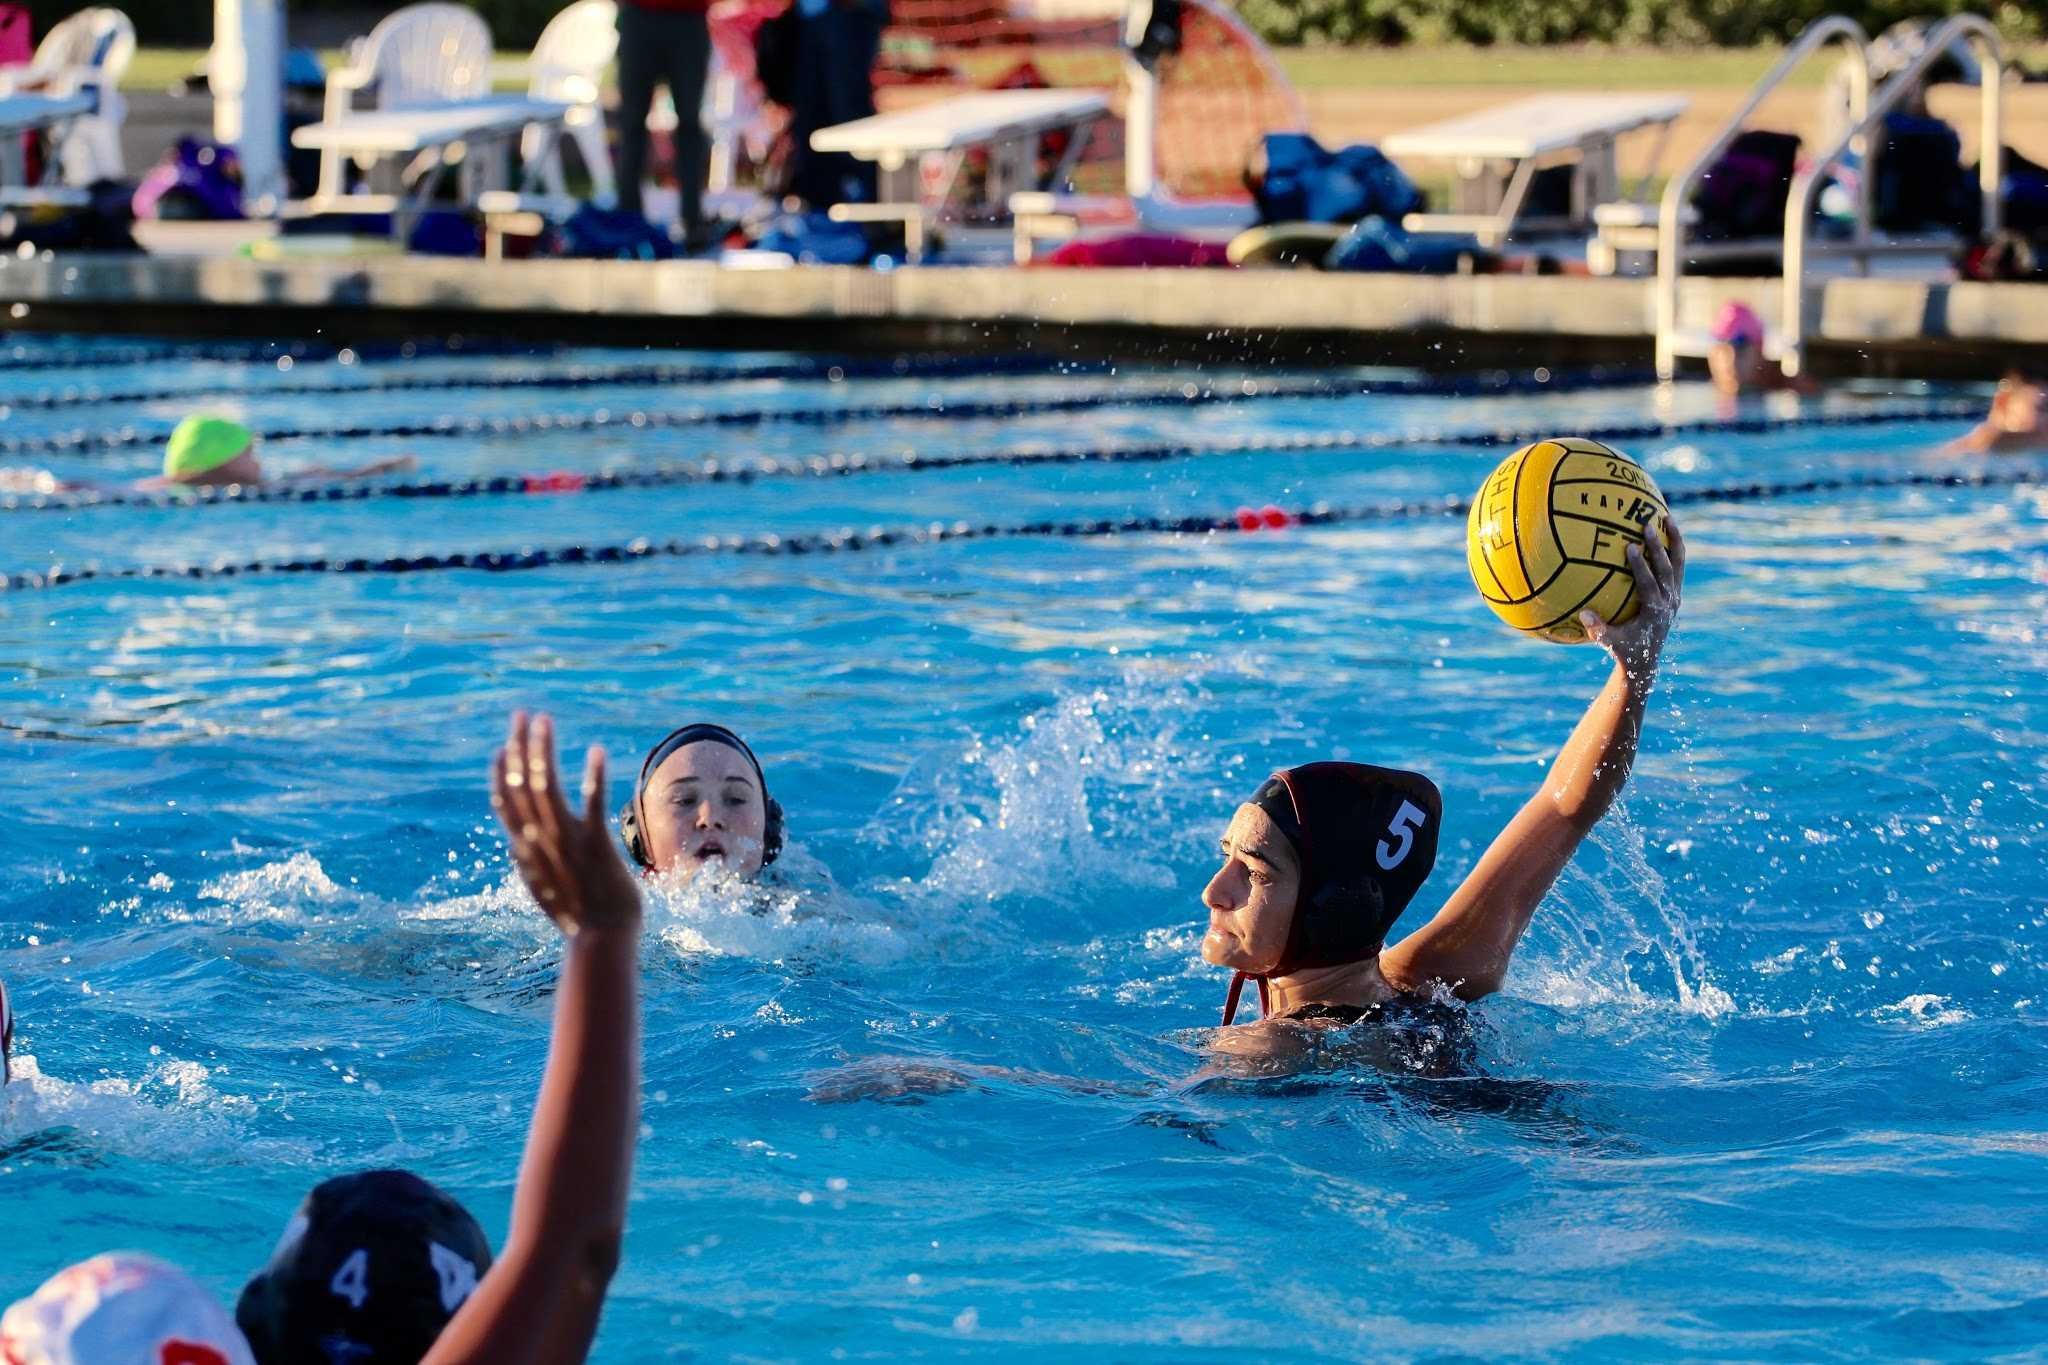 Foothill team captain Ariana Singer attempts to score. Credit: Kazu Koba/The Foothill Dragon Press